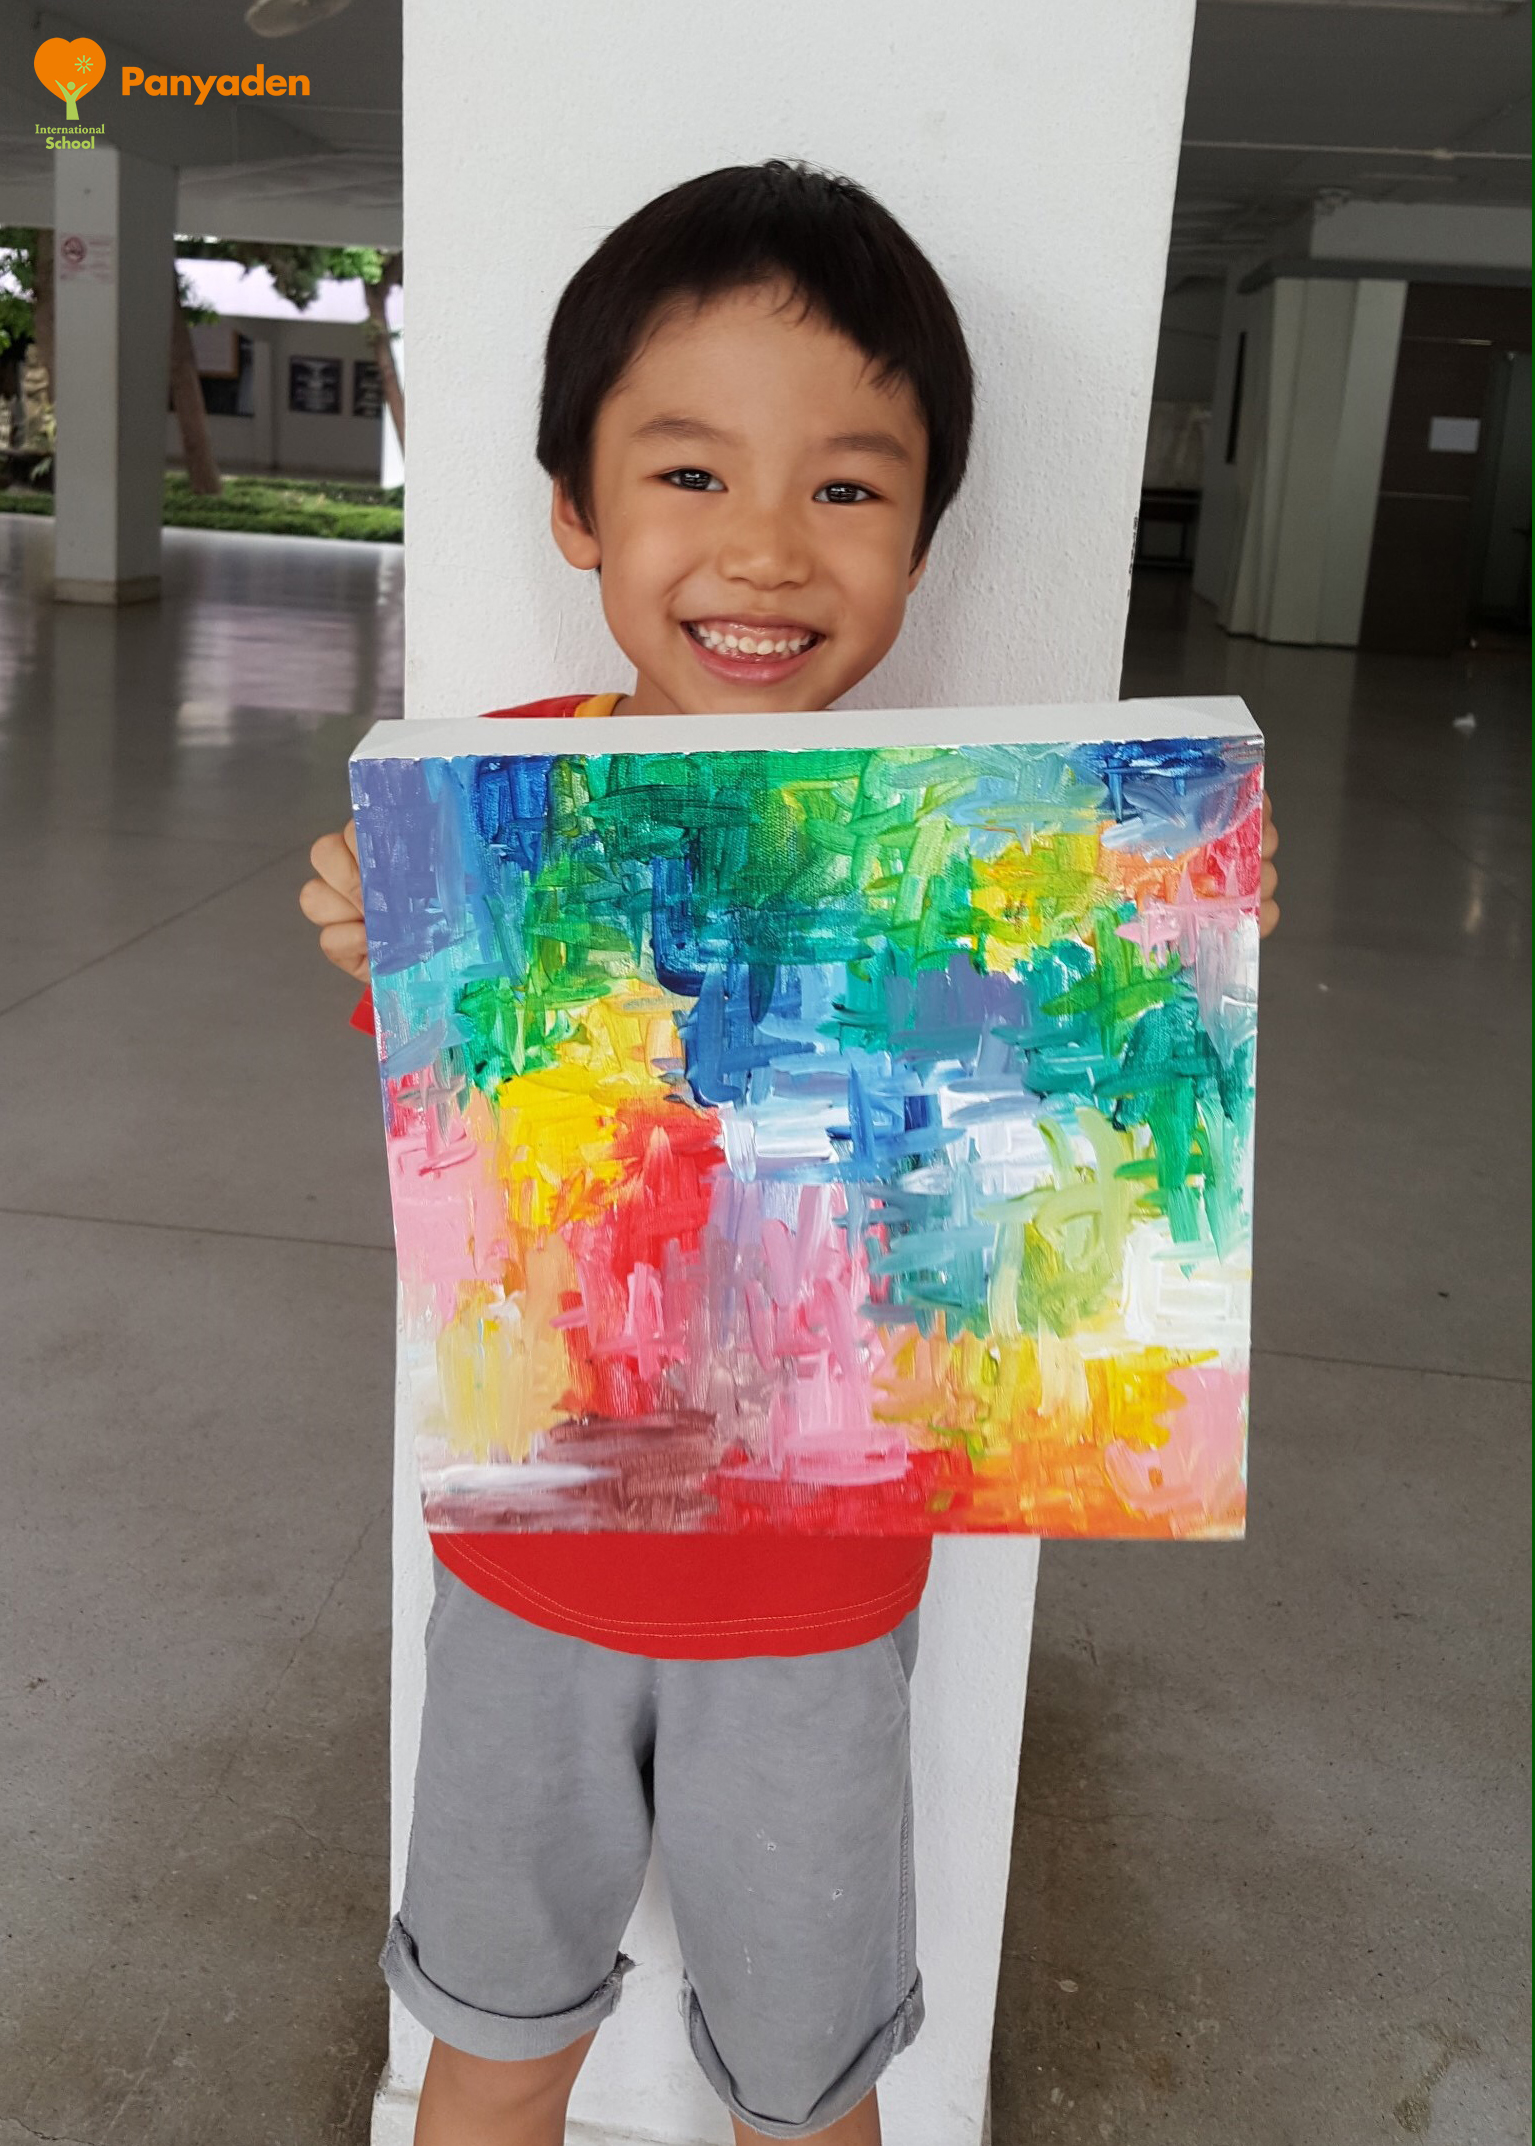 Nong Puri's finished painting for his art auction to raise funds for Panyaden's rebuilding effort